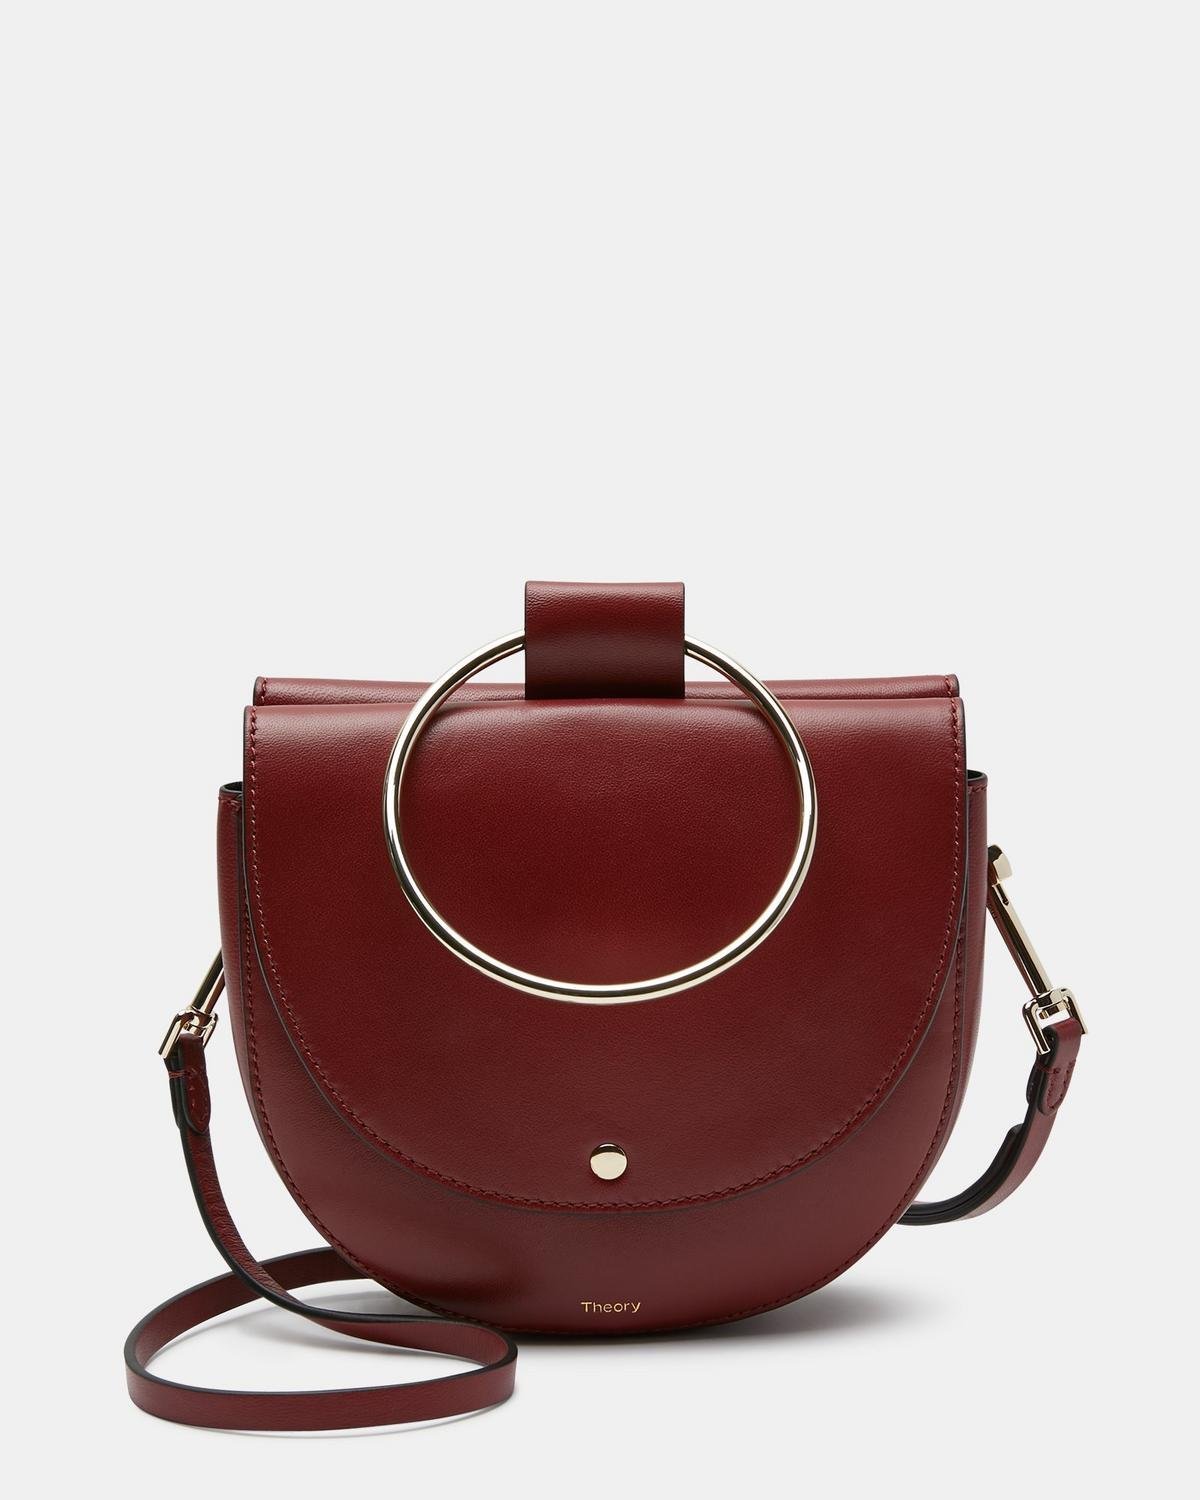 Whitney Bag in Nappa Leather